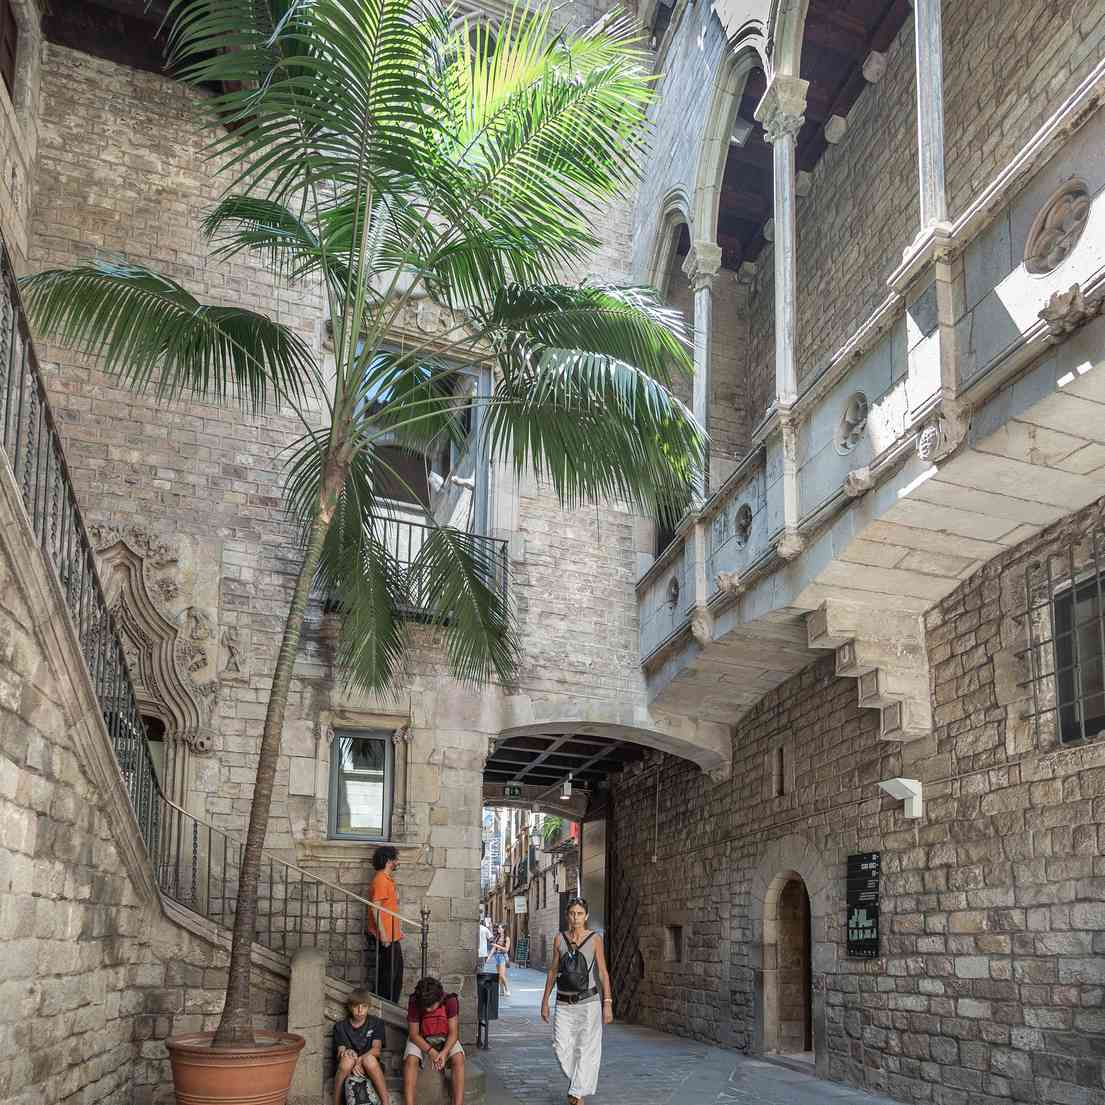 Courtyard at the Picasso Museum in Barcelona